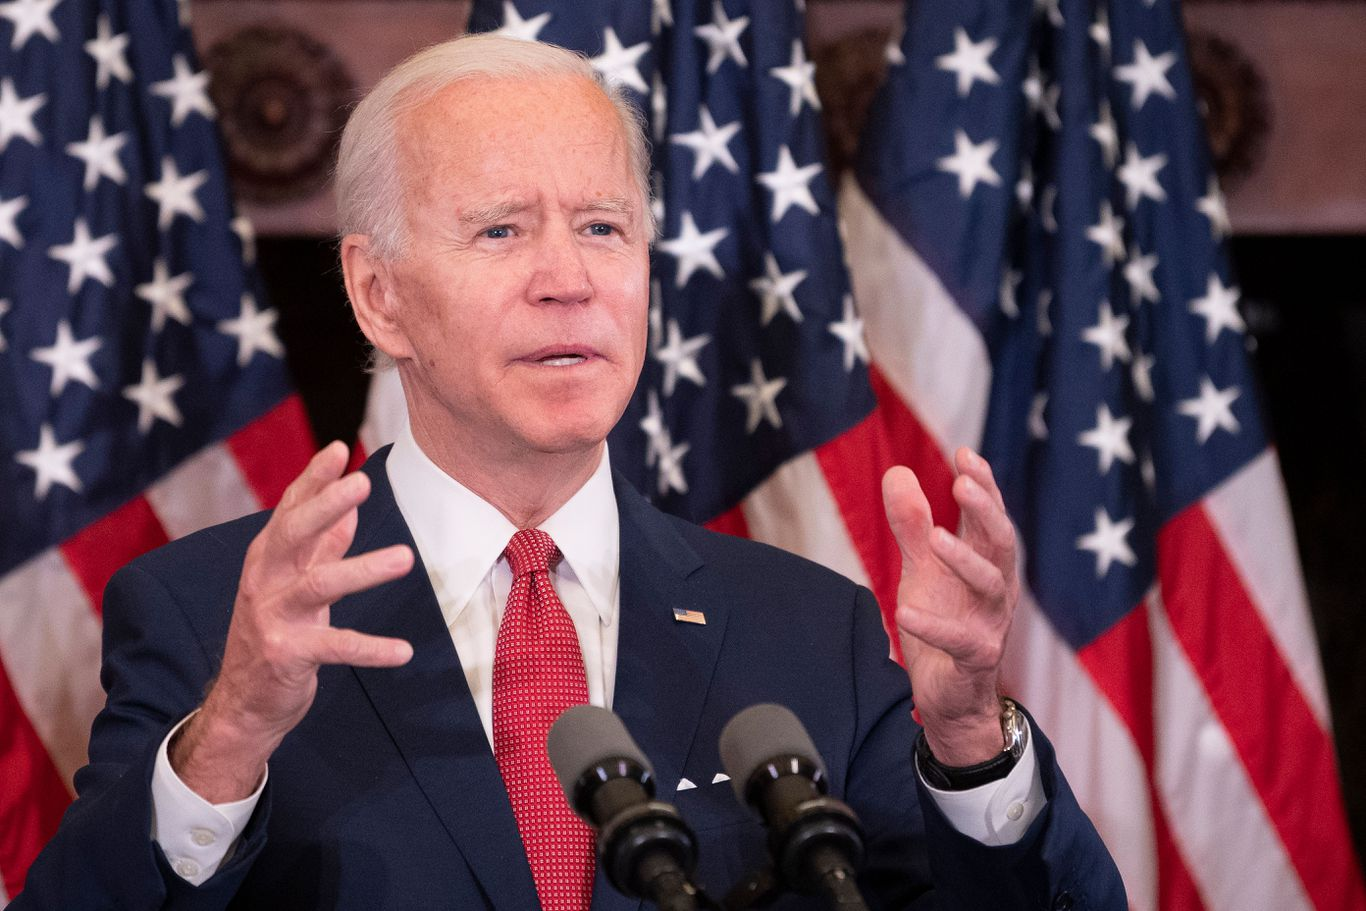 Biden to accept nomination at pared-down Milwaukee convention thumbnail